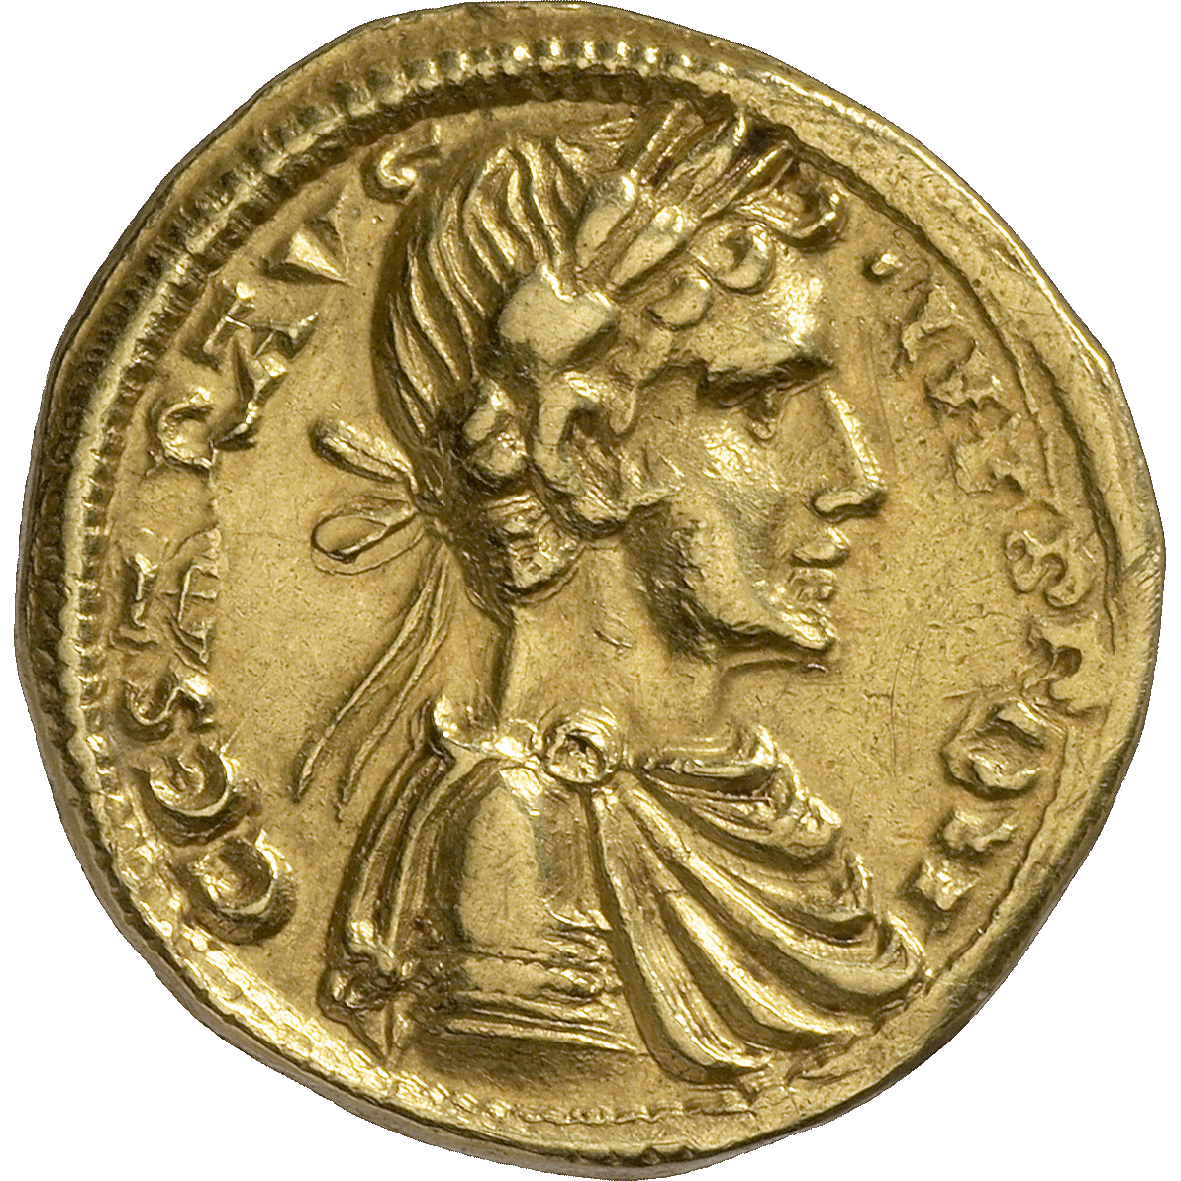 Holy Roman Empire, Frederick II of Hohenstaufen, 1/2 Augustalis (obverse)